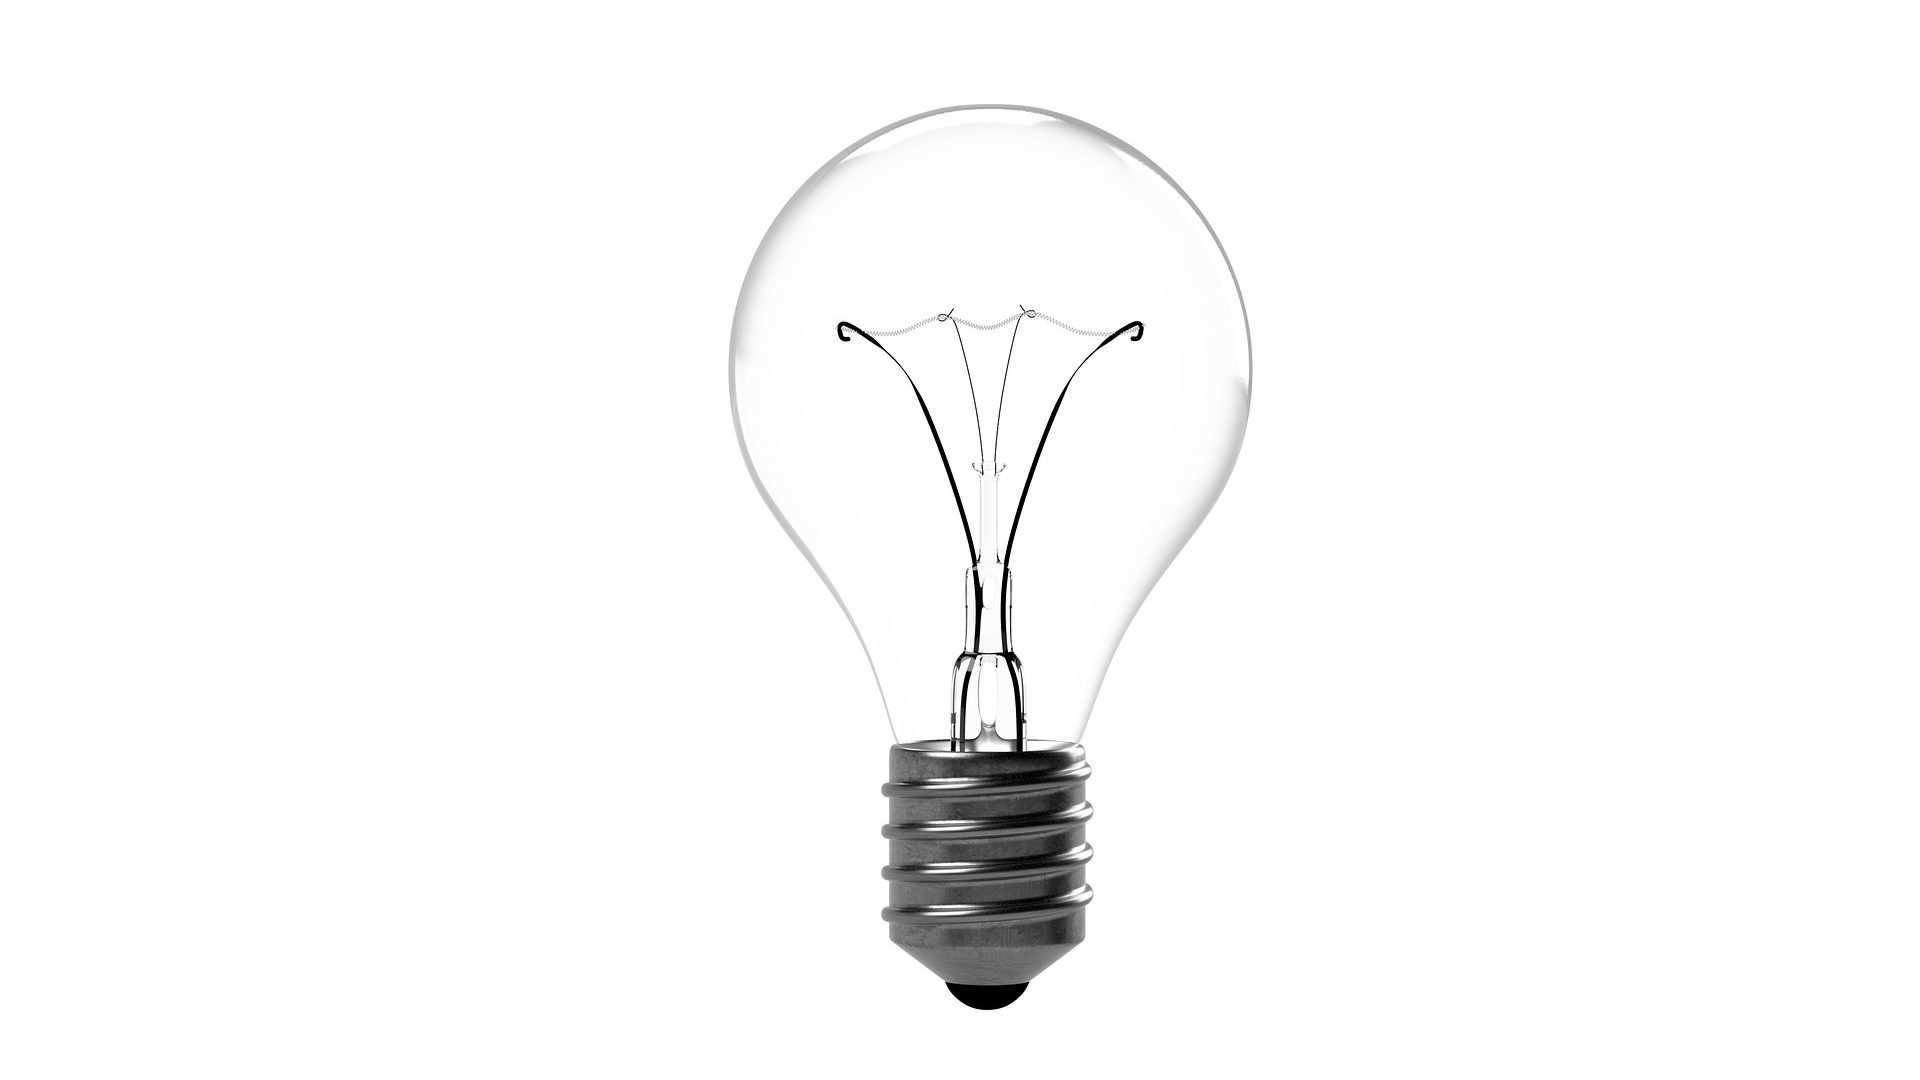 lightbulb-1875255_1920